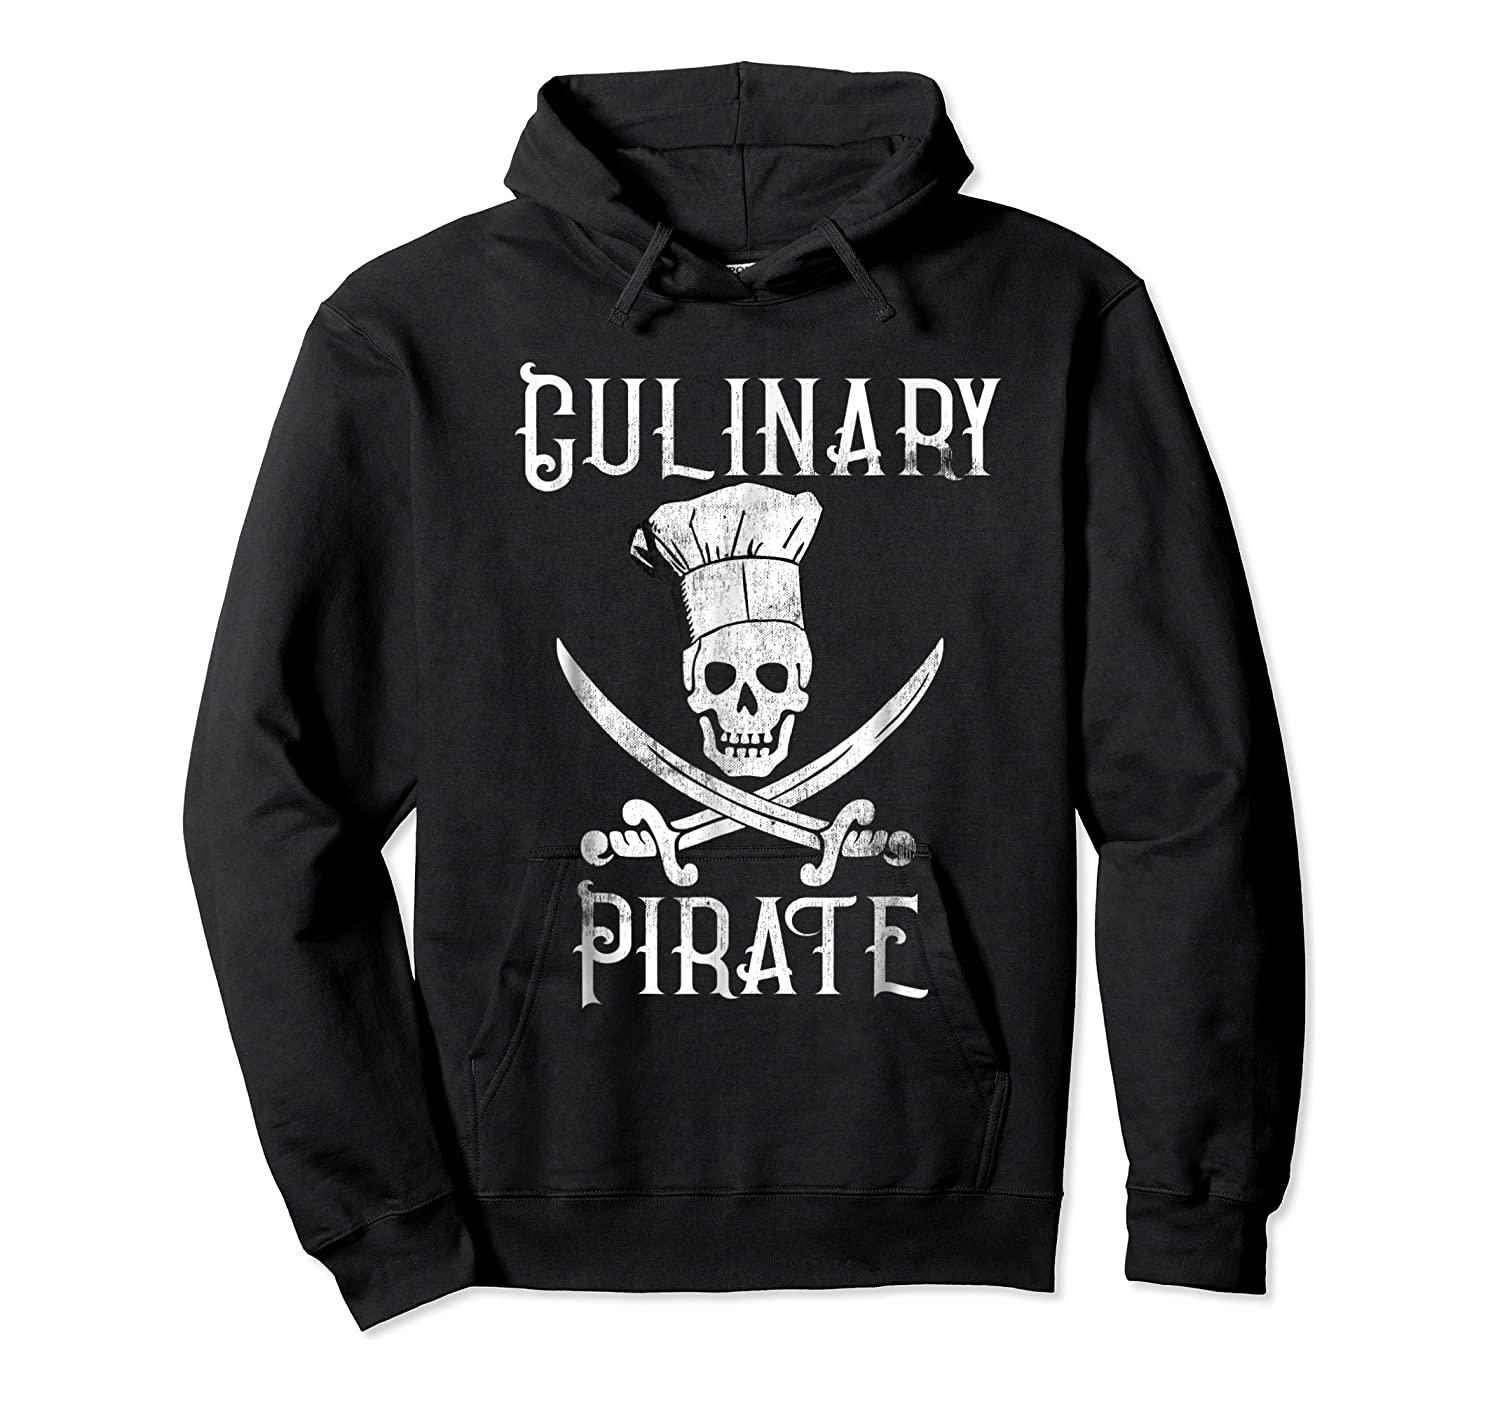 Fun Culinary T-shirt Vintage Culinary Pirate Skull Chef Hat Unisex Pullover Hoodie